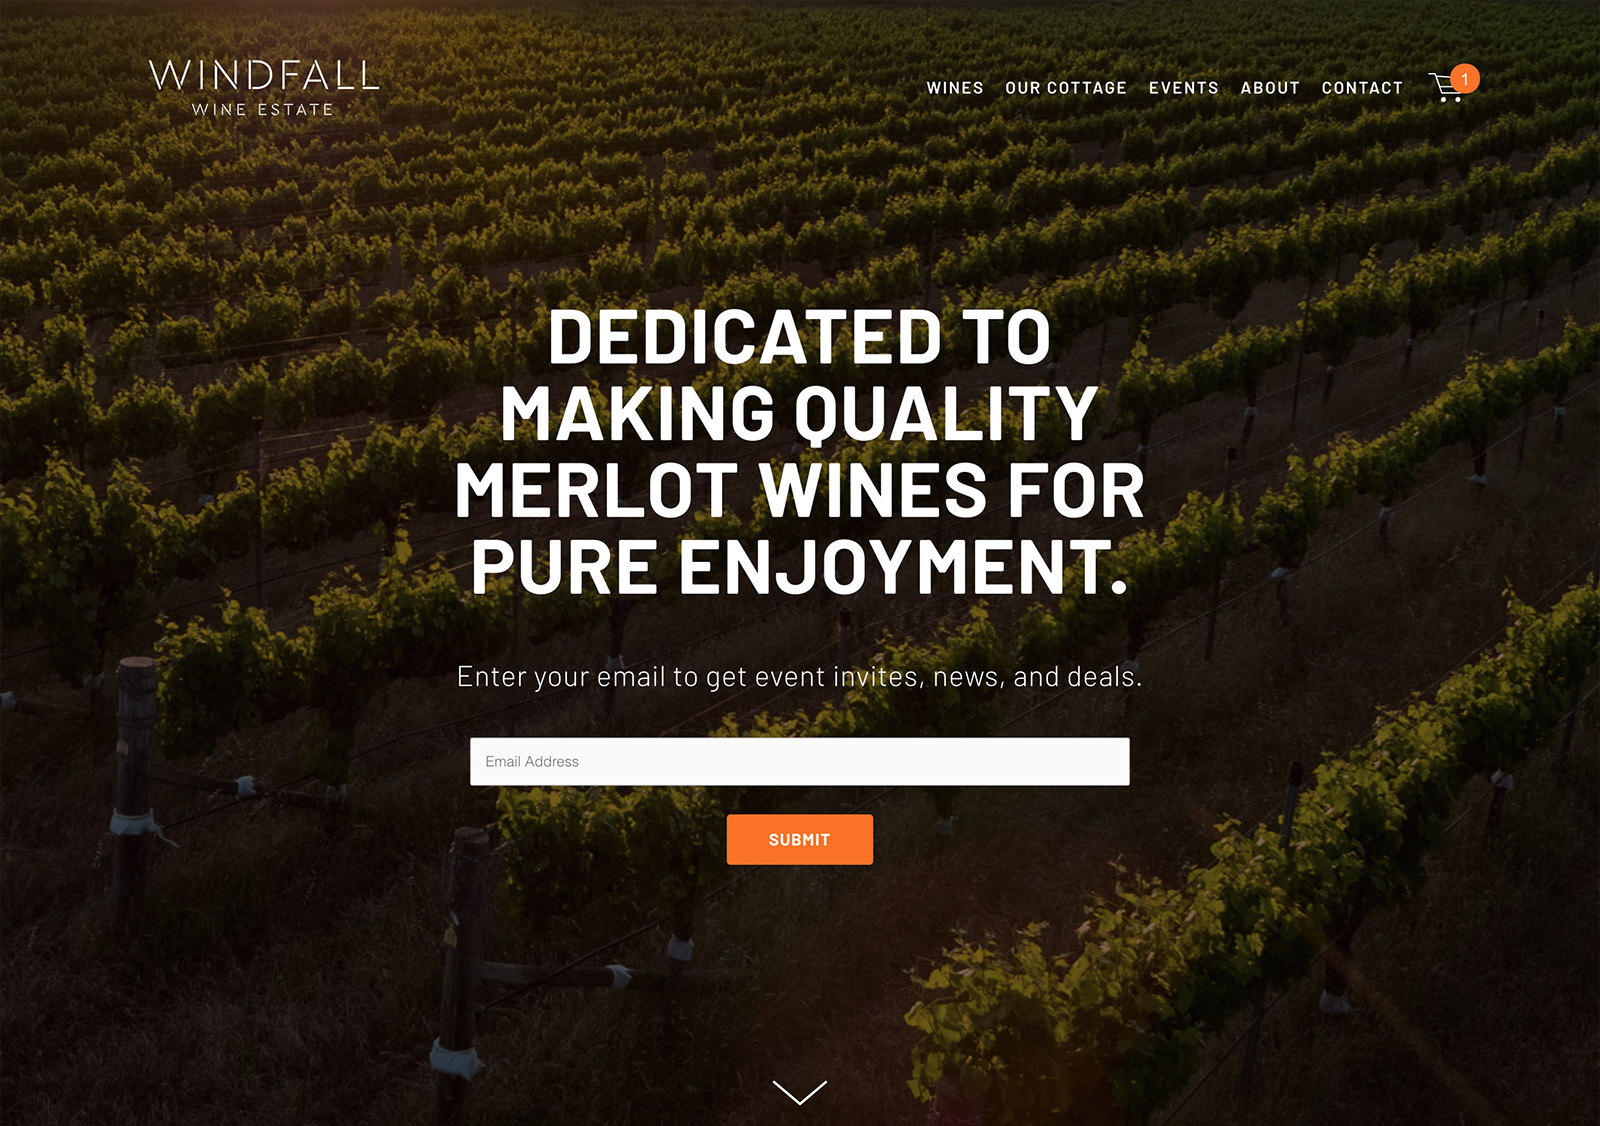 Windfall Wine Estate's Website